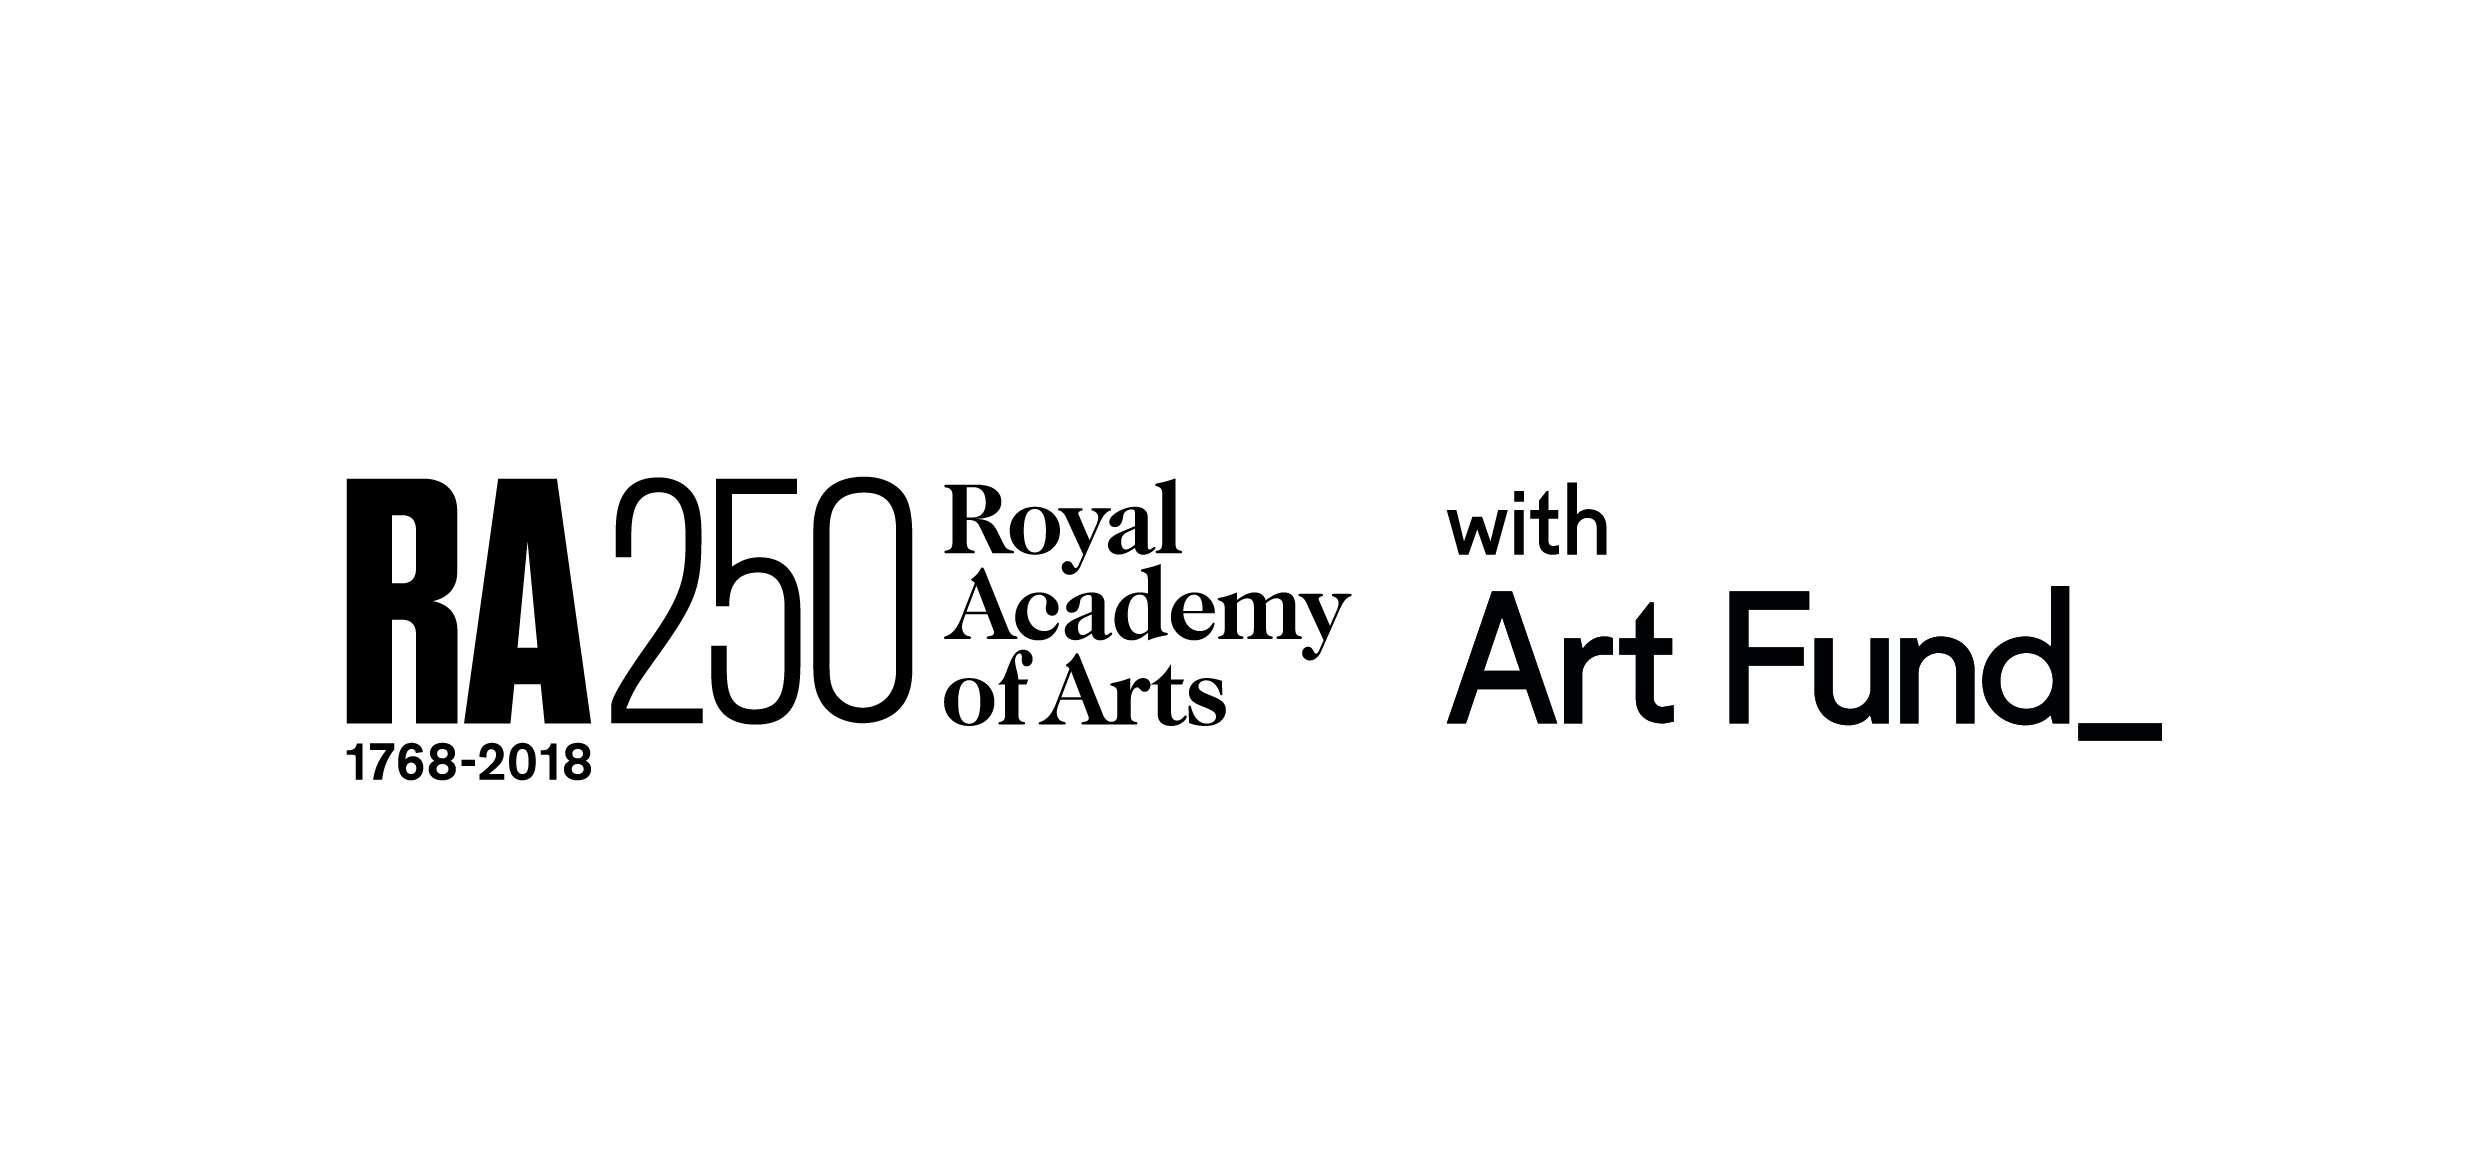 Royal Academy supported by the Art Fund (logos)